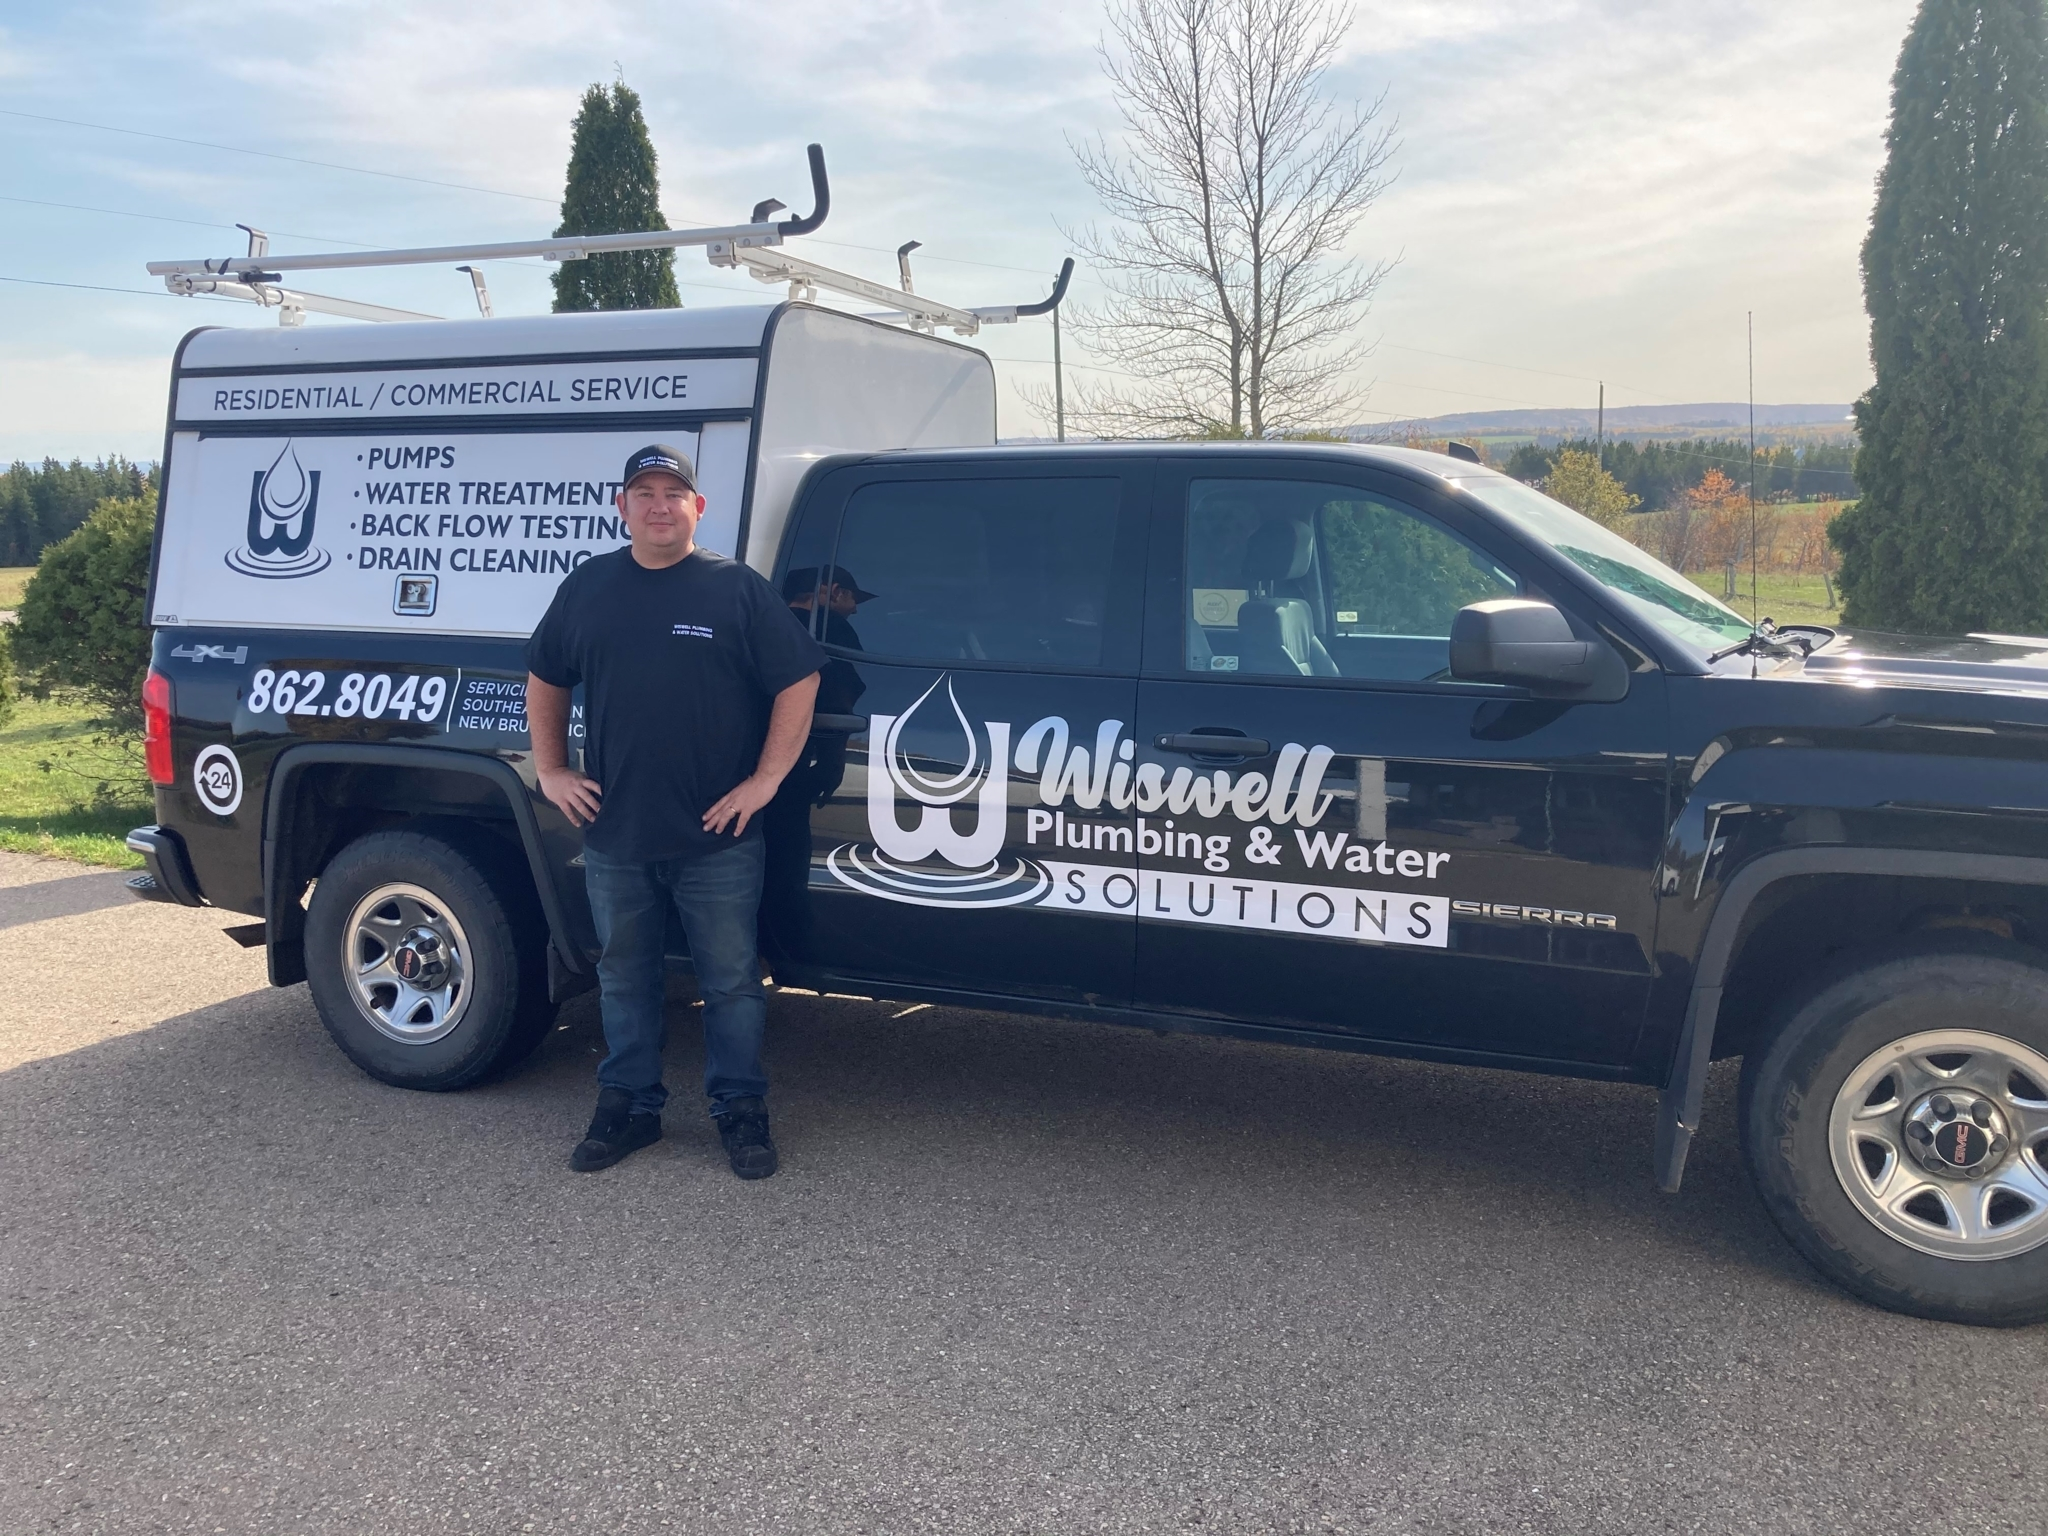 Wiswell Plumbing & Water Solutions